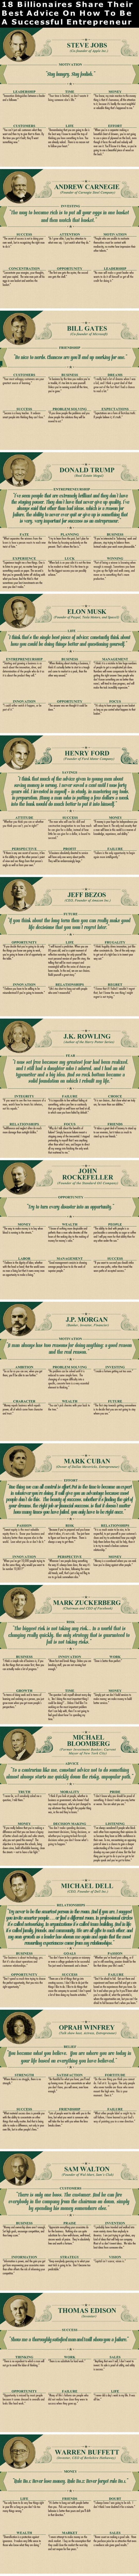 18 Billionaires Share Their Best Advice On How To Become A Successful Entrepreneur Pictures, Photos, and Images for Facebook, Tumblr, Pinterest, and Twitter #entrepreneur #followback #startup